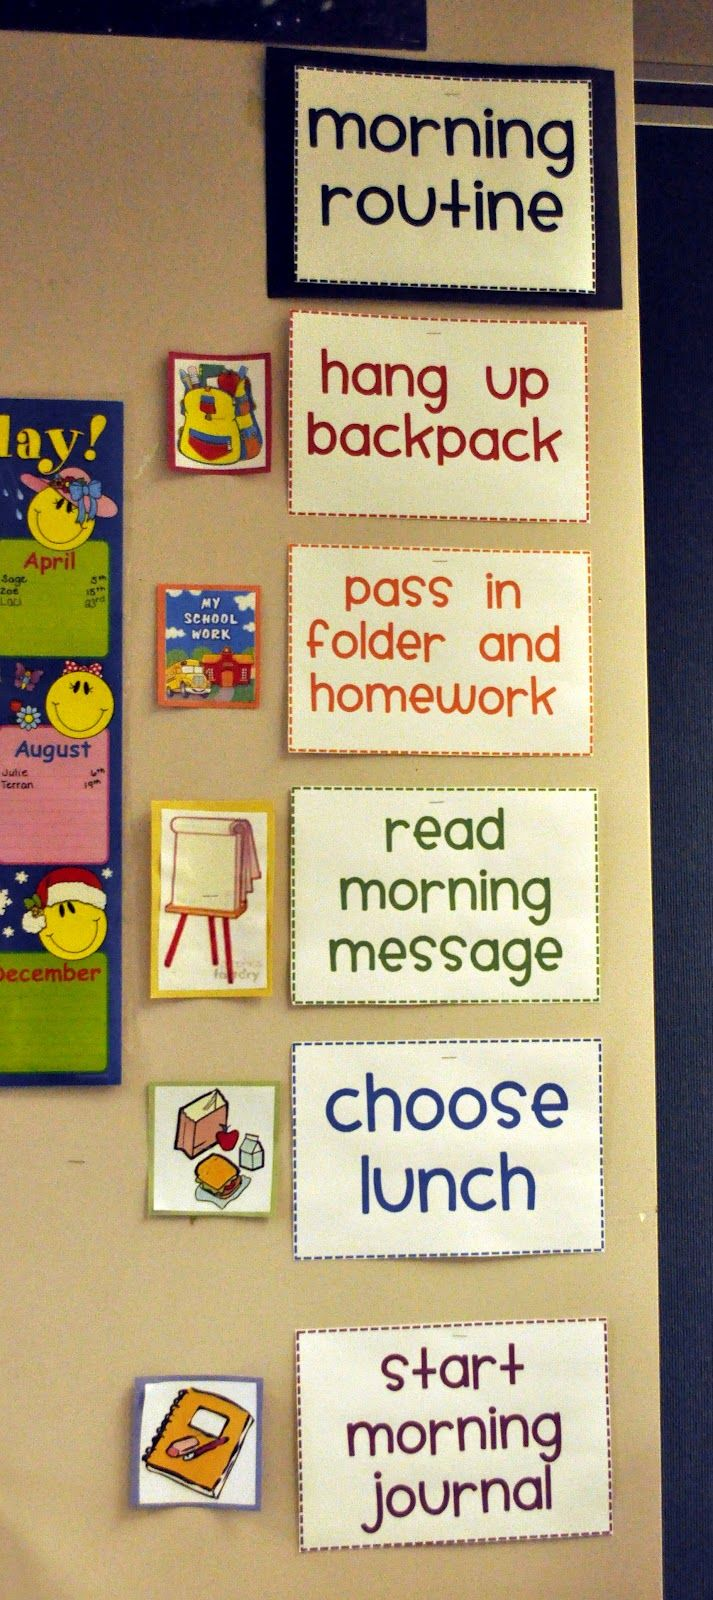 Smiling In Second Grade Morning Routine Teaching Procedures Classroom Decorations School Classroom